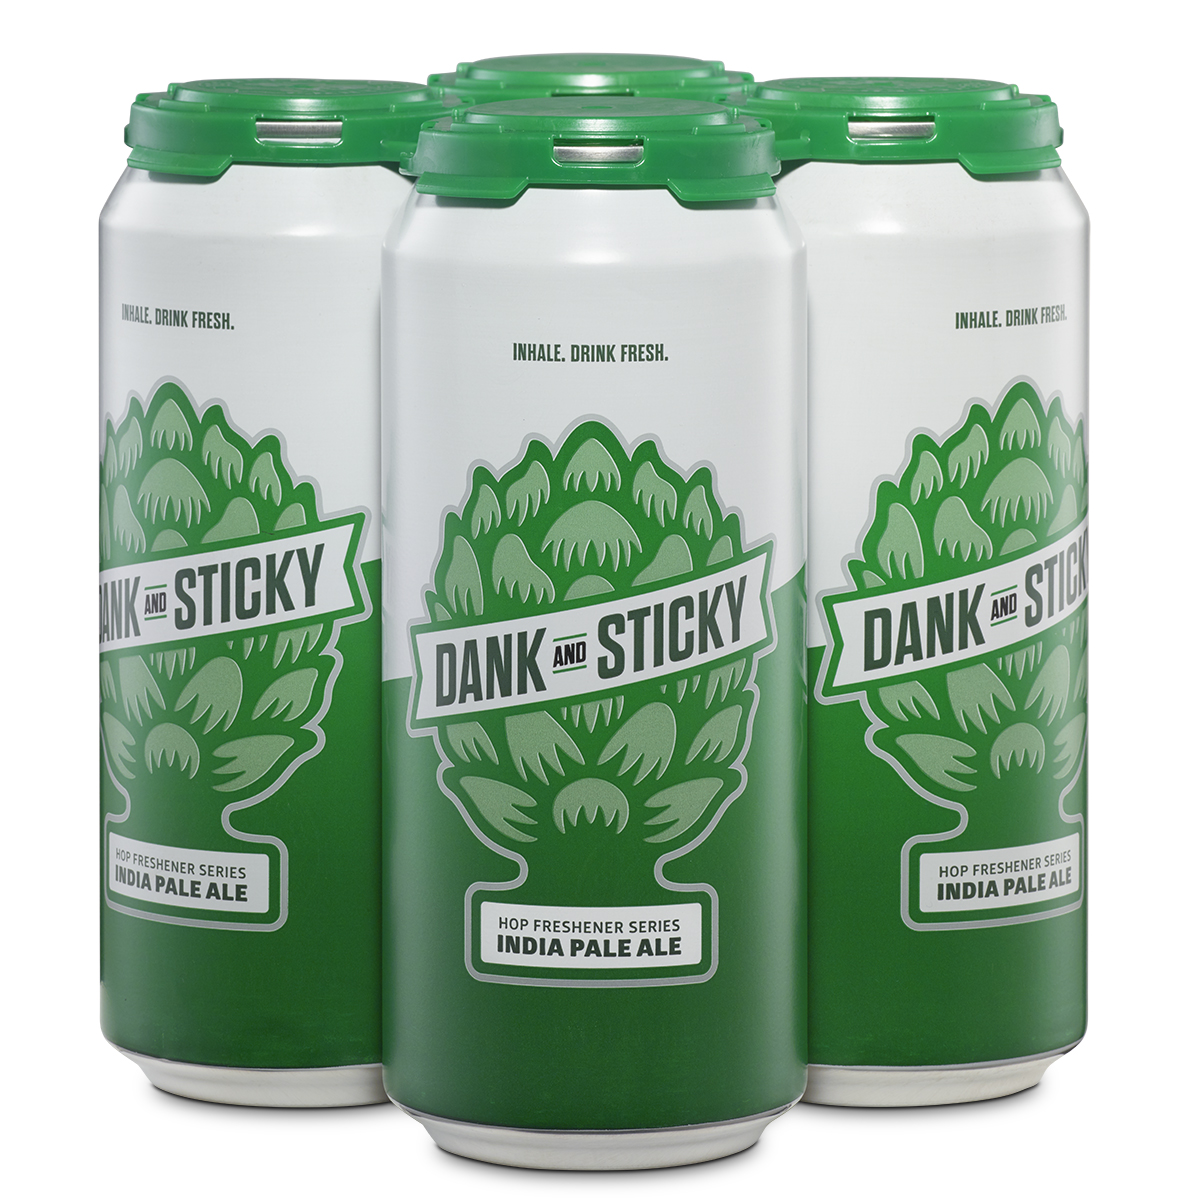 Dank and Sticky IPA - Four-Pack THUMBNAIL